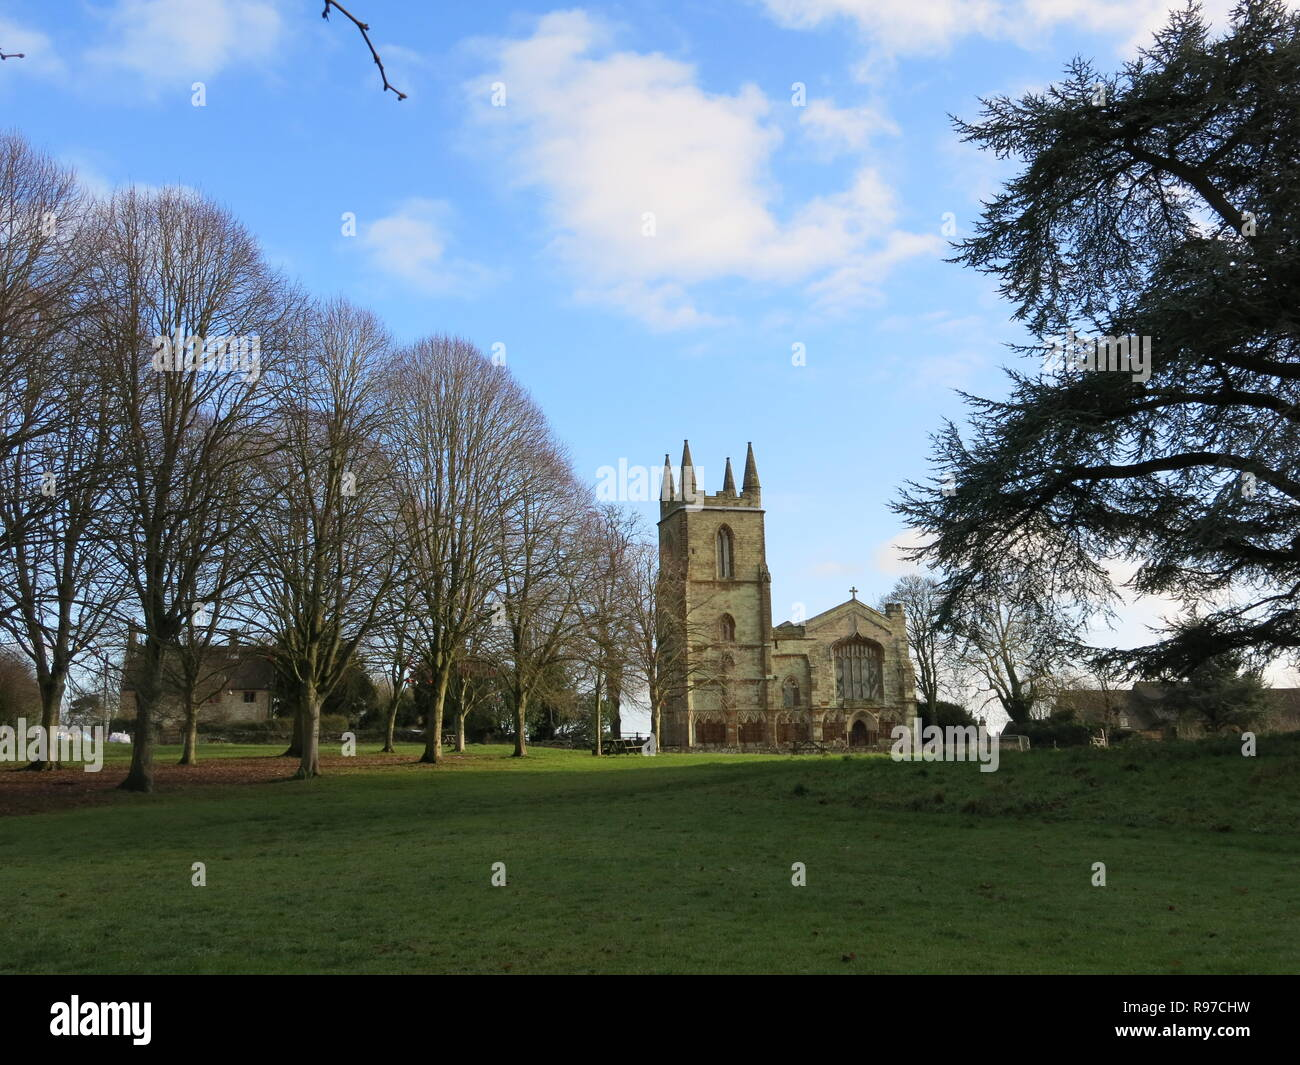 View of the Priory Church of St Mary, Canons Ashby, on a bright winter's day; December 2018 - Stock Image